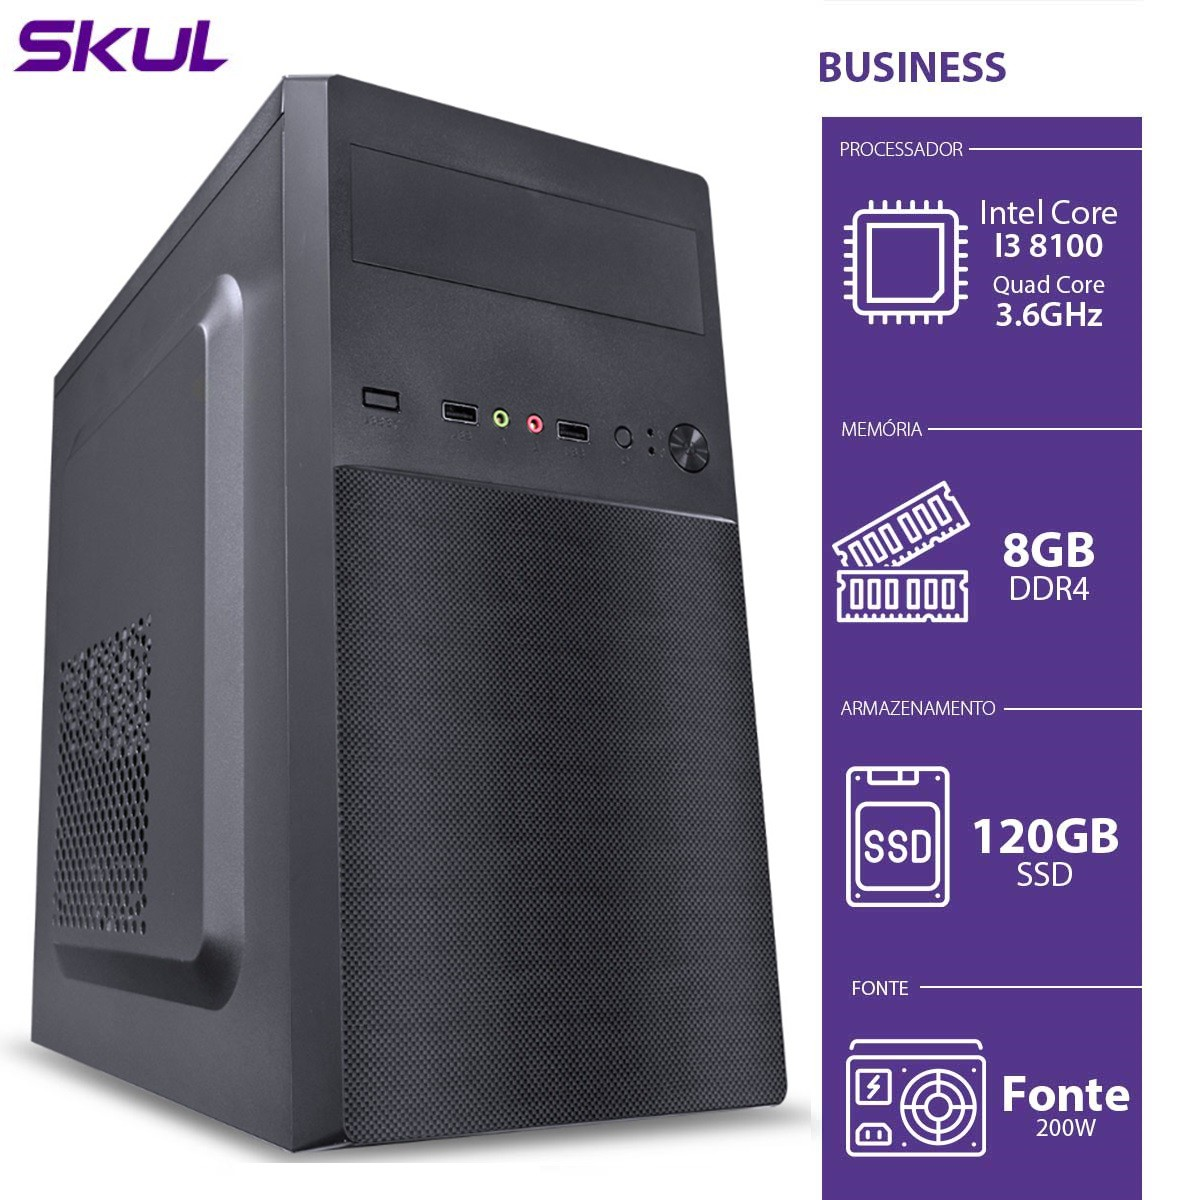 Computador Business B300 - I3-8100 3.6GHZ 8GB DDR4 SSD 120GB HDMI/VGA Fonte 200W